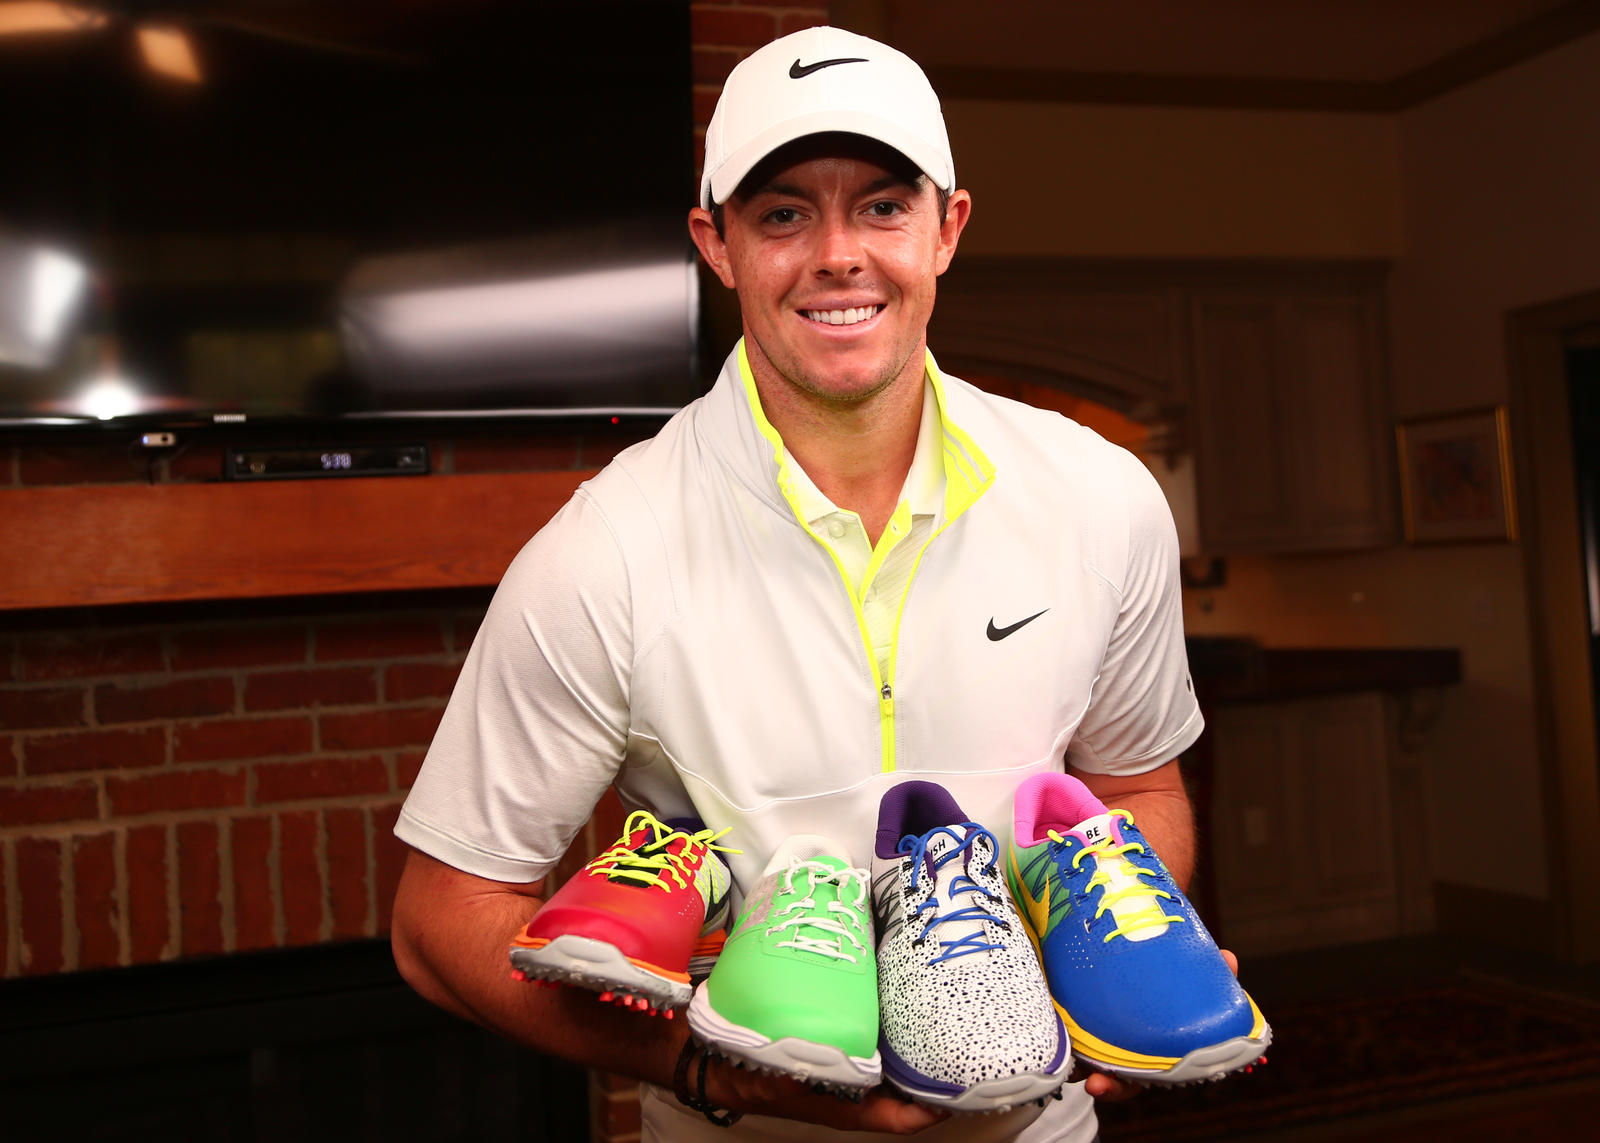 Rory McIlroy Laces Up for Kids Impacted